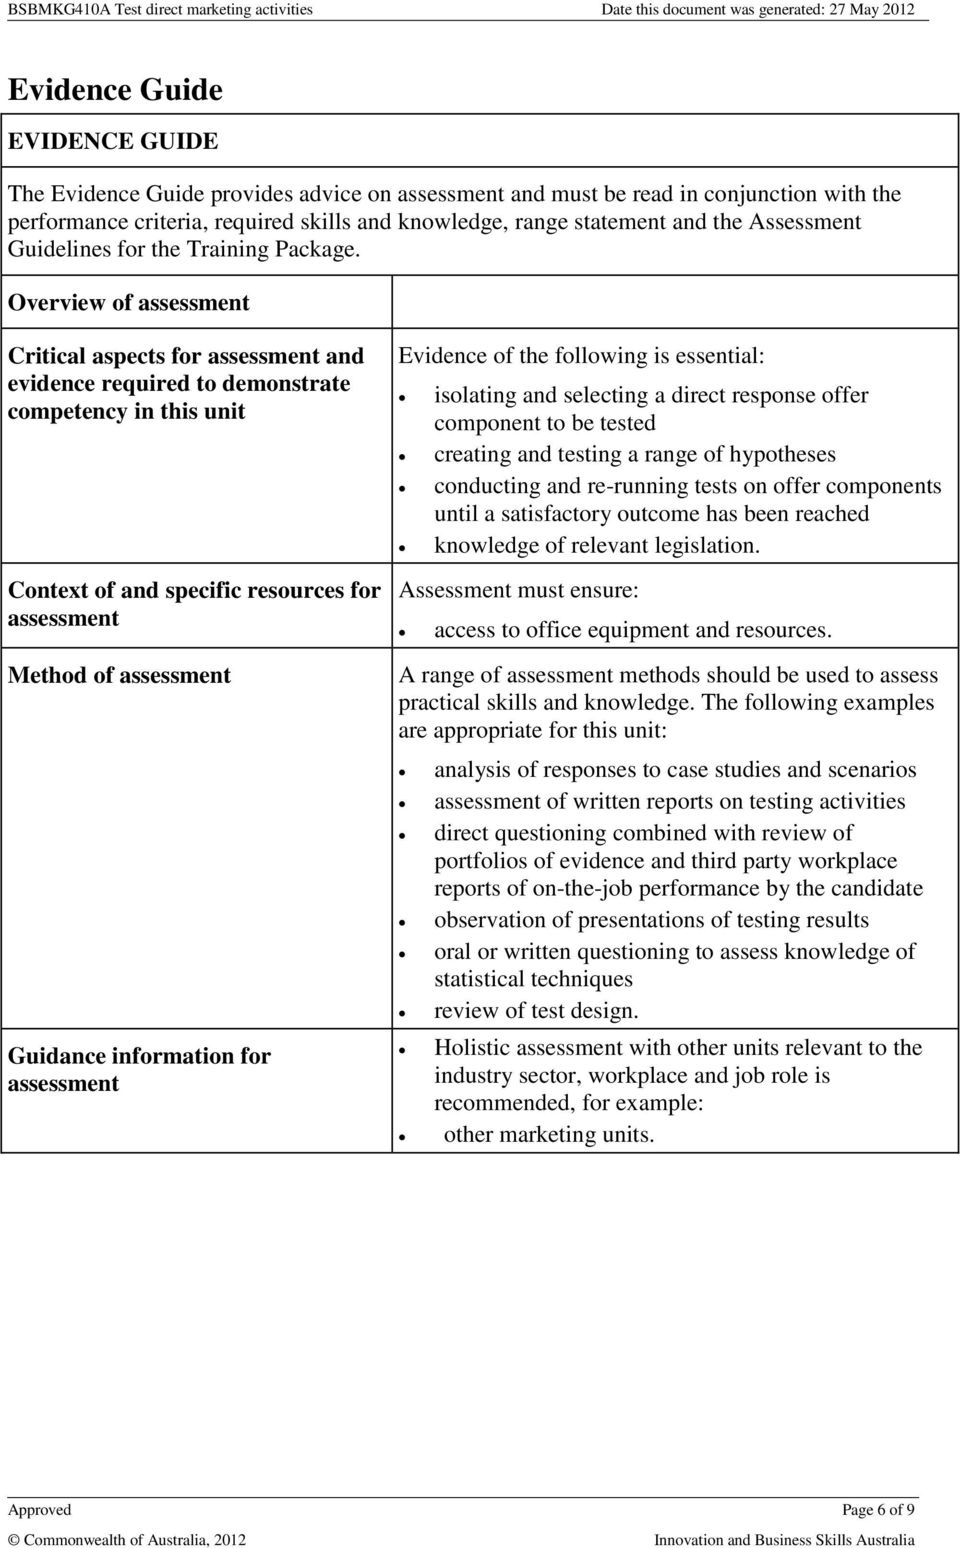 Overview of assessment Critical aspects for assessment and evidence required to demonstrate competency in this unit Context of and specific resources for assessment Method of assessment Guidance